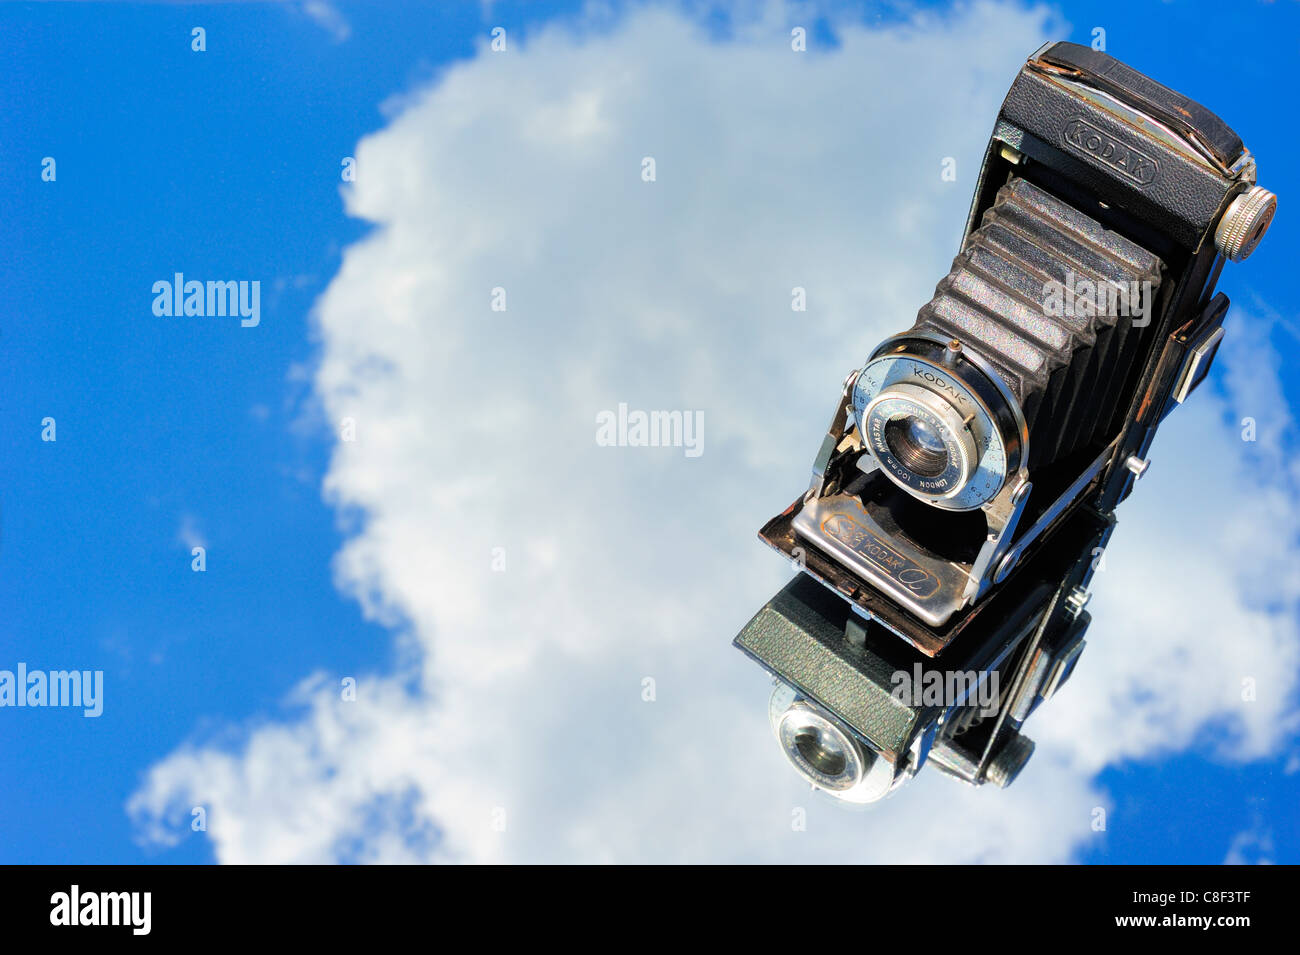 Old bellows camera reflected against the sky - Stock Image